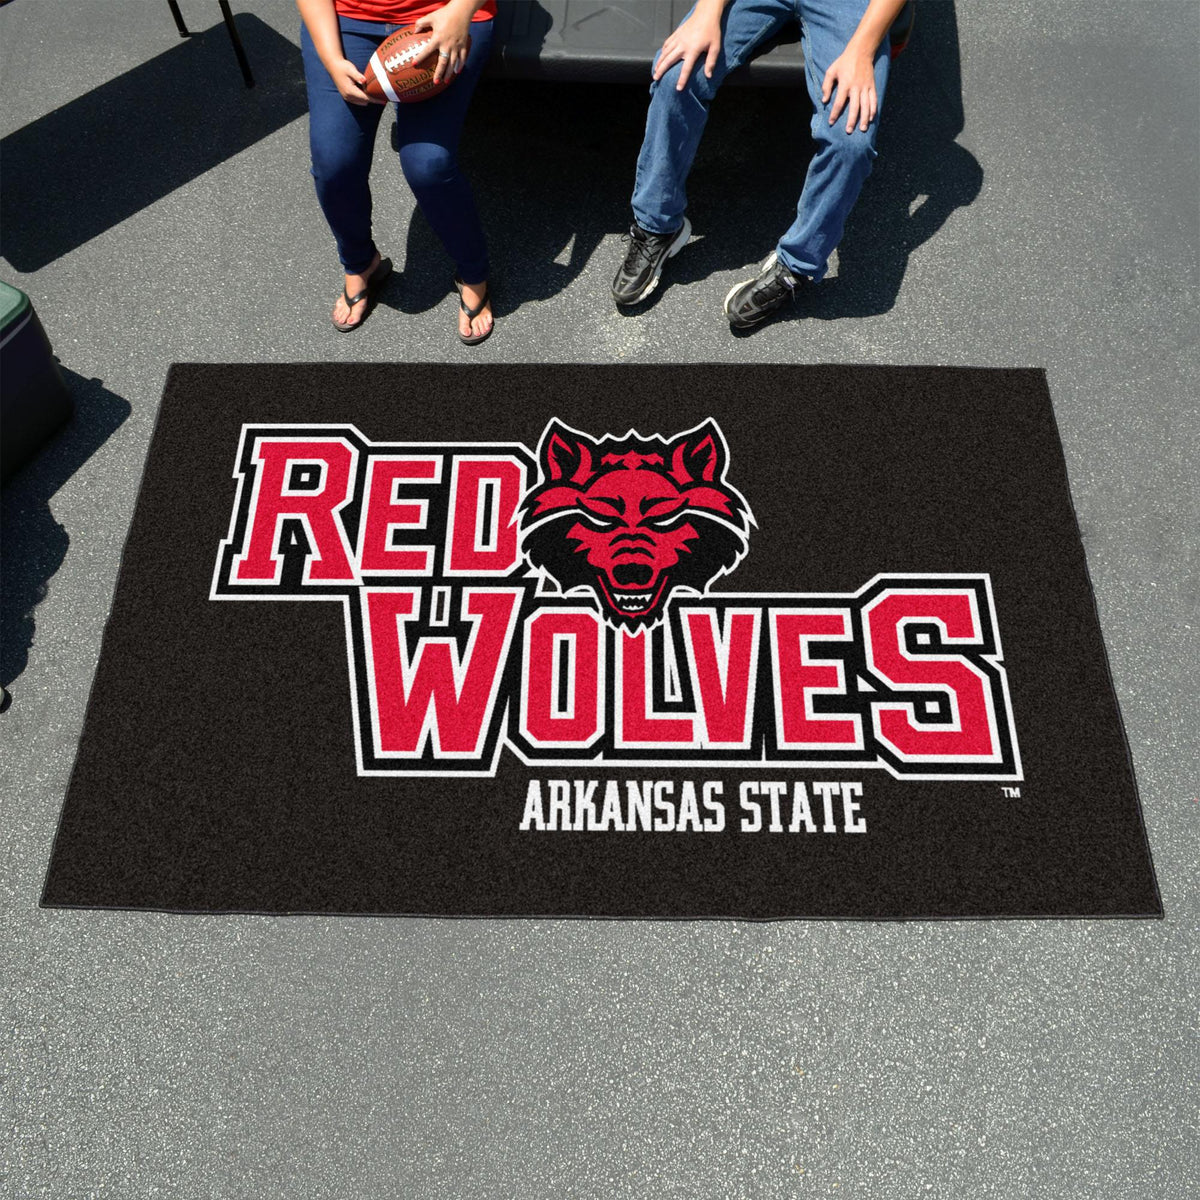 Collegiate - Ulti-Mat: A - L Collegiate Mats, Rectangular Mats, Ulti-Mat, Collegiate, Home Fan Mats Arkansas State